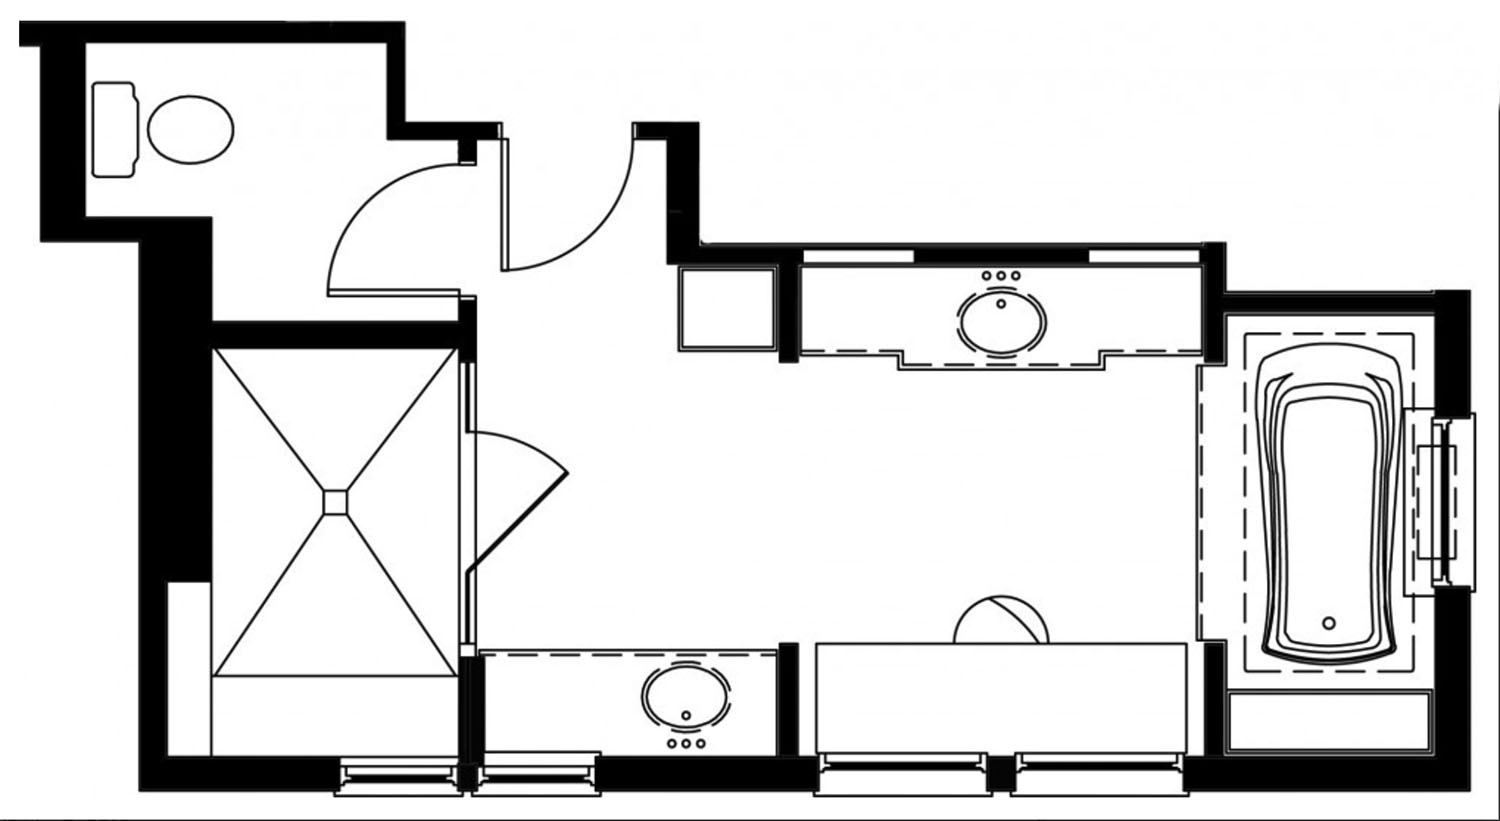 drool-worth-bathroom-floor-plan